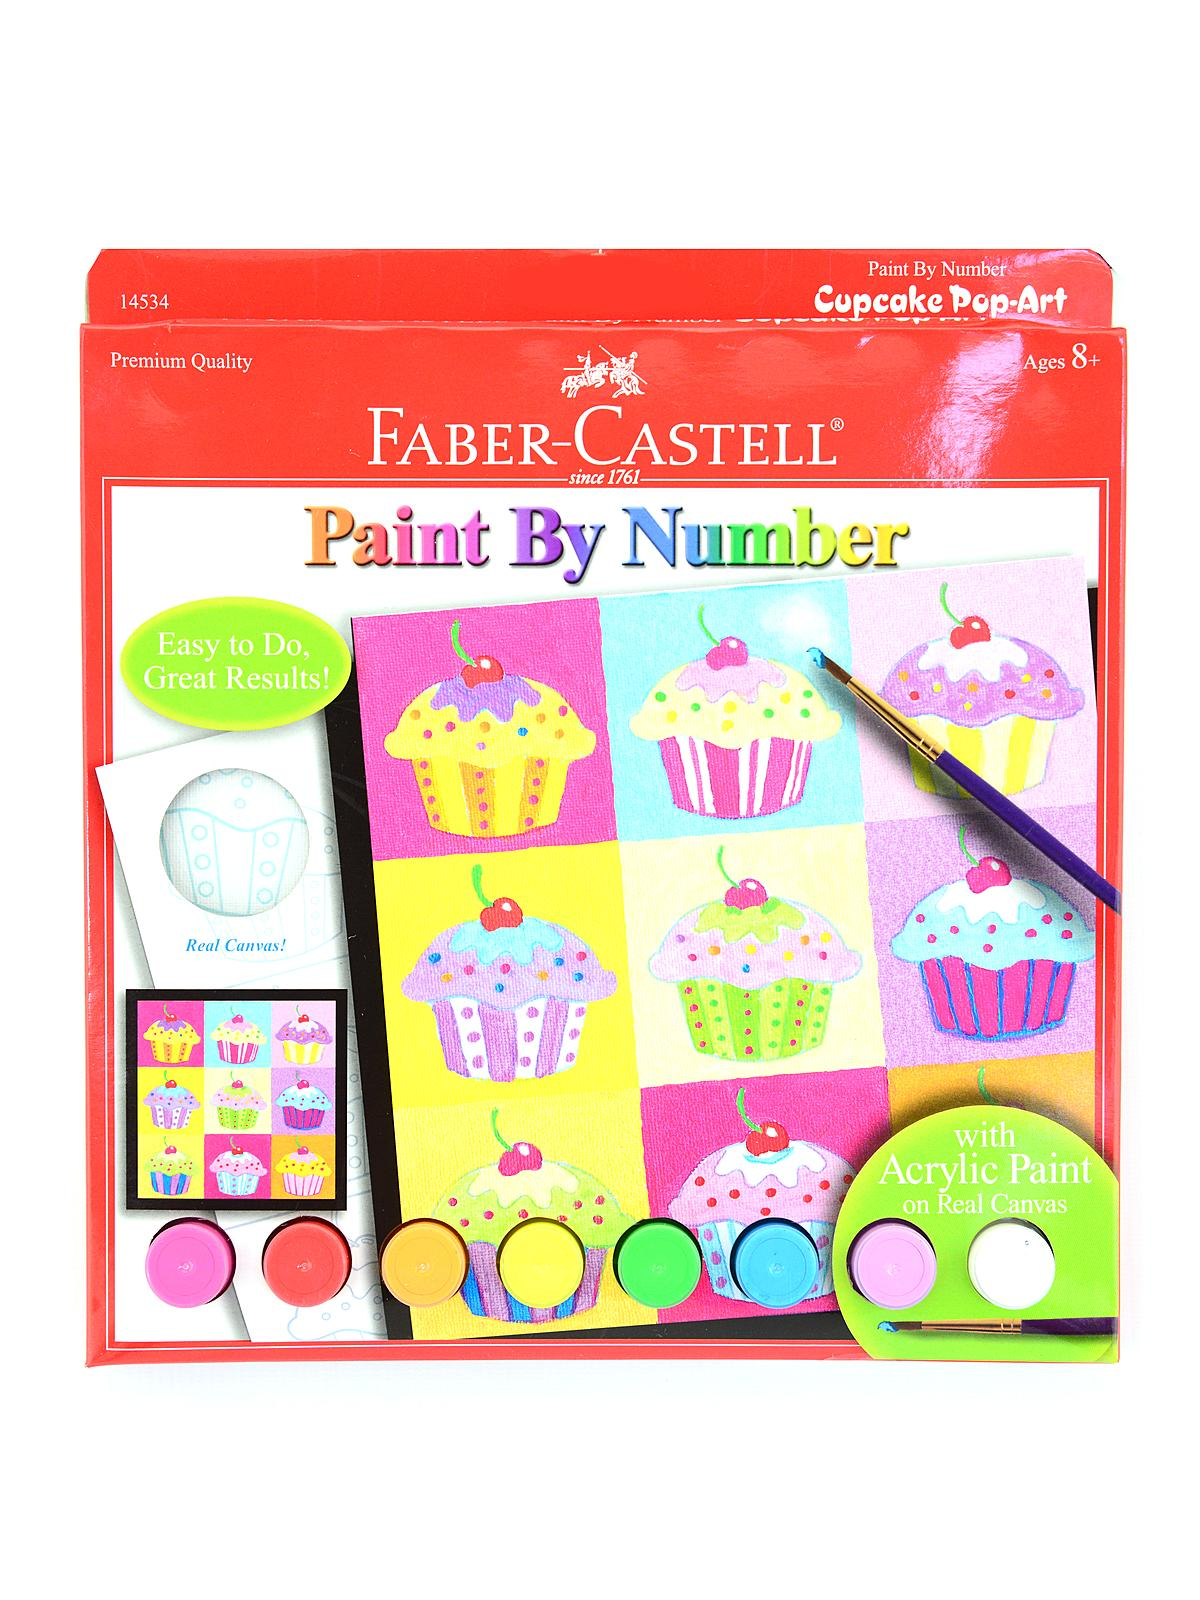 Faber-Castell - Paint by Number Cupcake Pop-Art